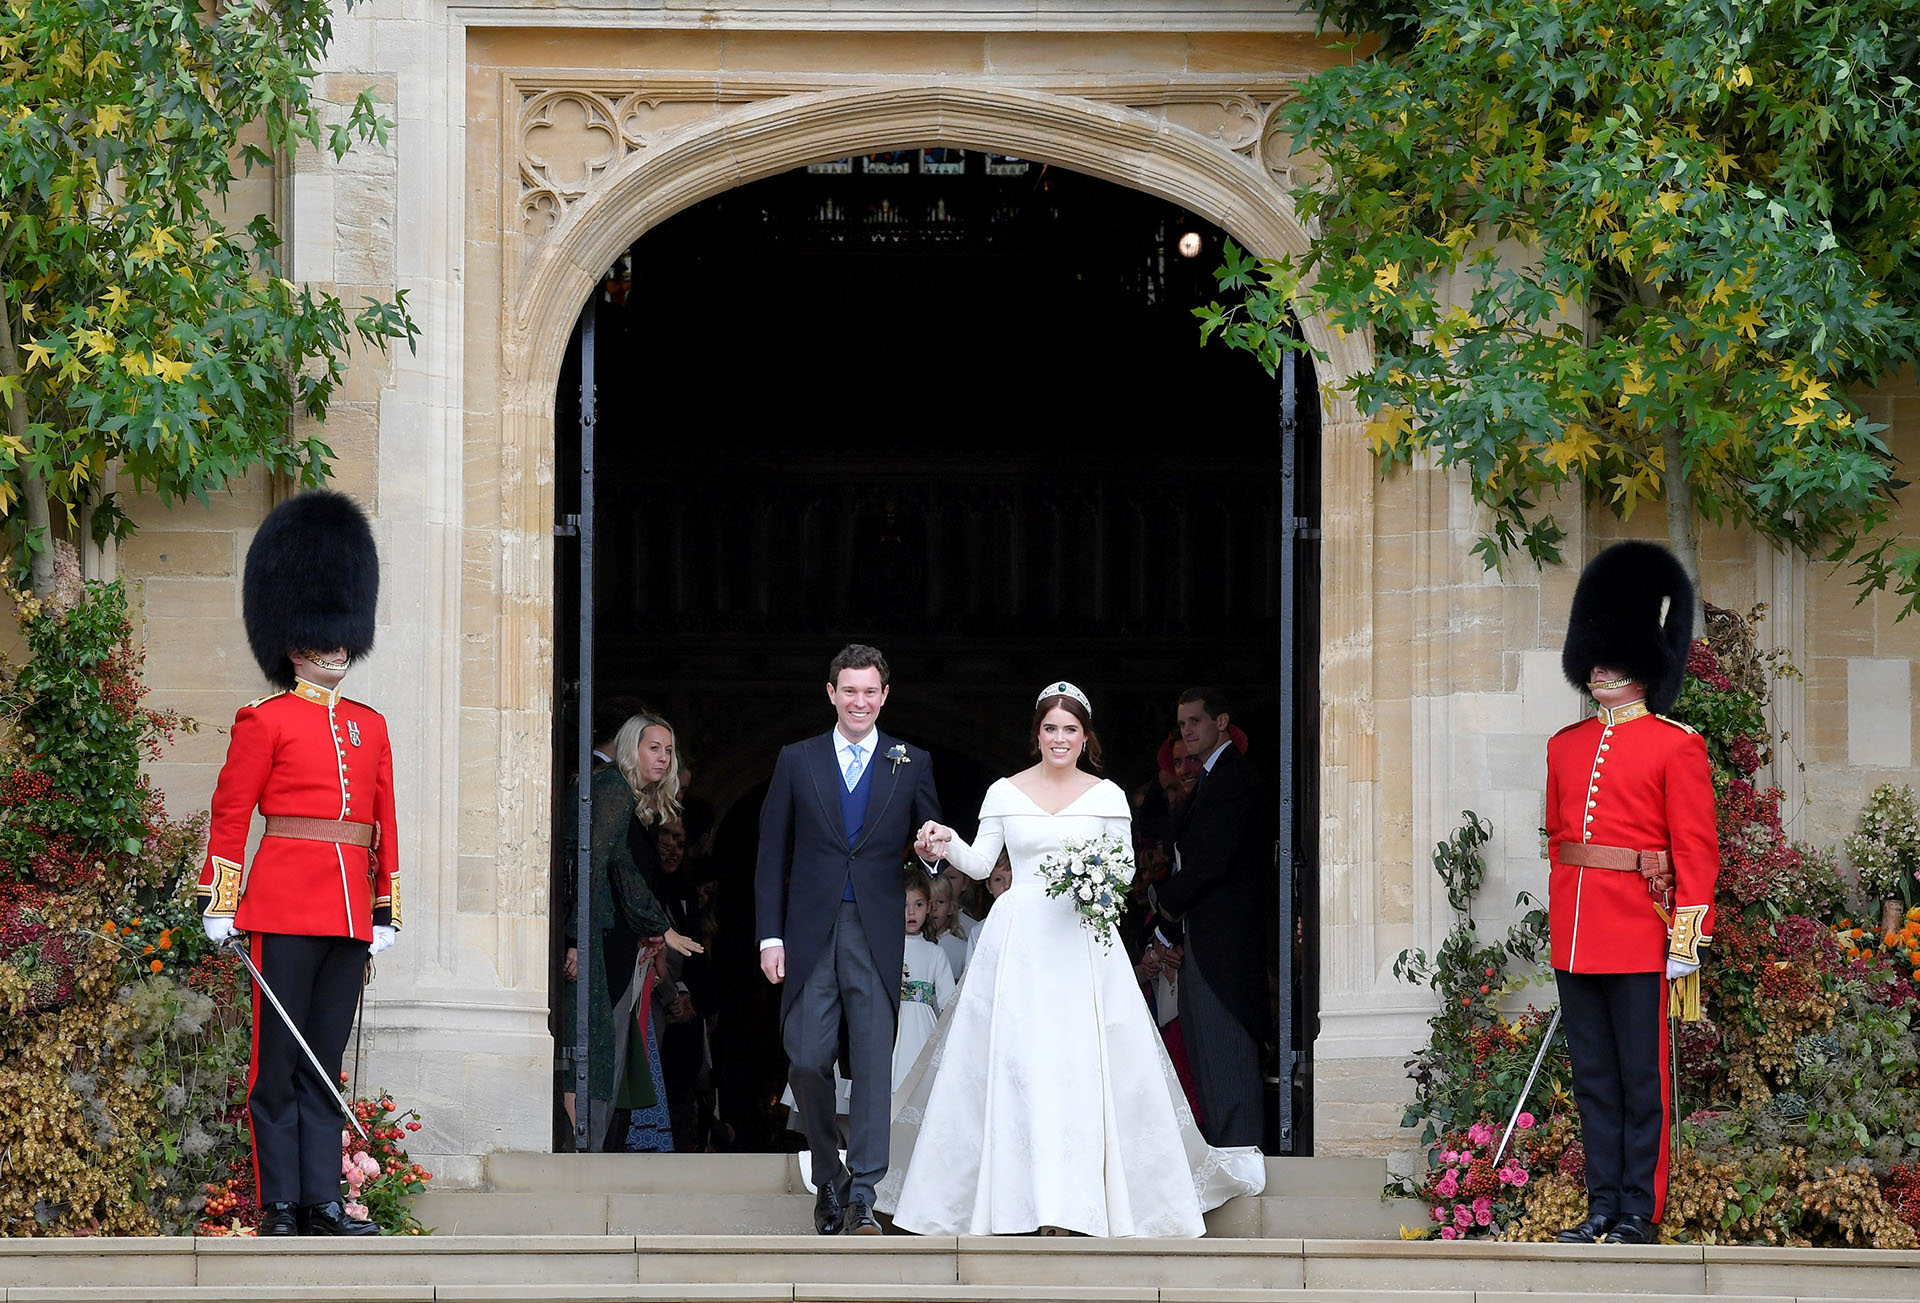 Britain's Princess Eugenie of York and her husband Jack Brooksbank leave after their wedding at St George's Chapel in Windsor Castle, Windsor